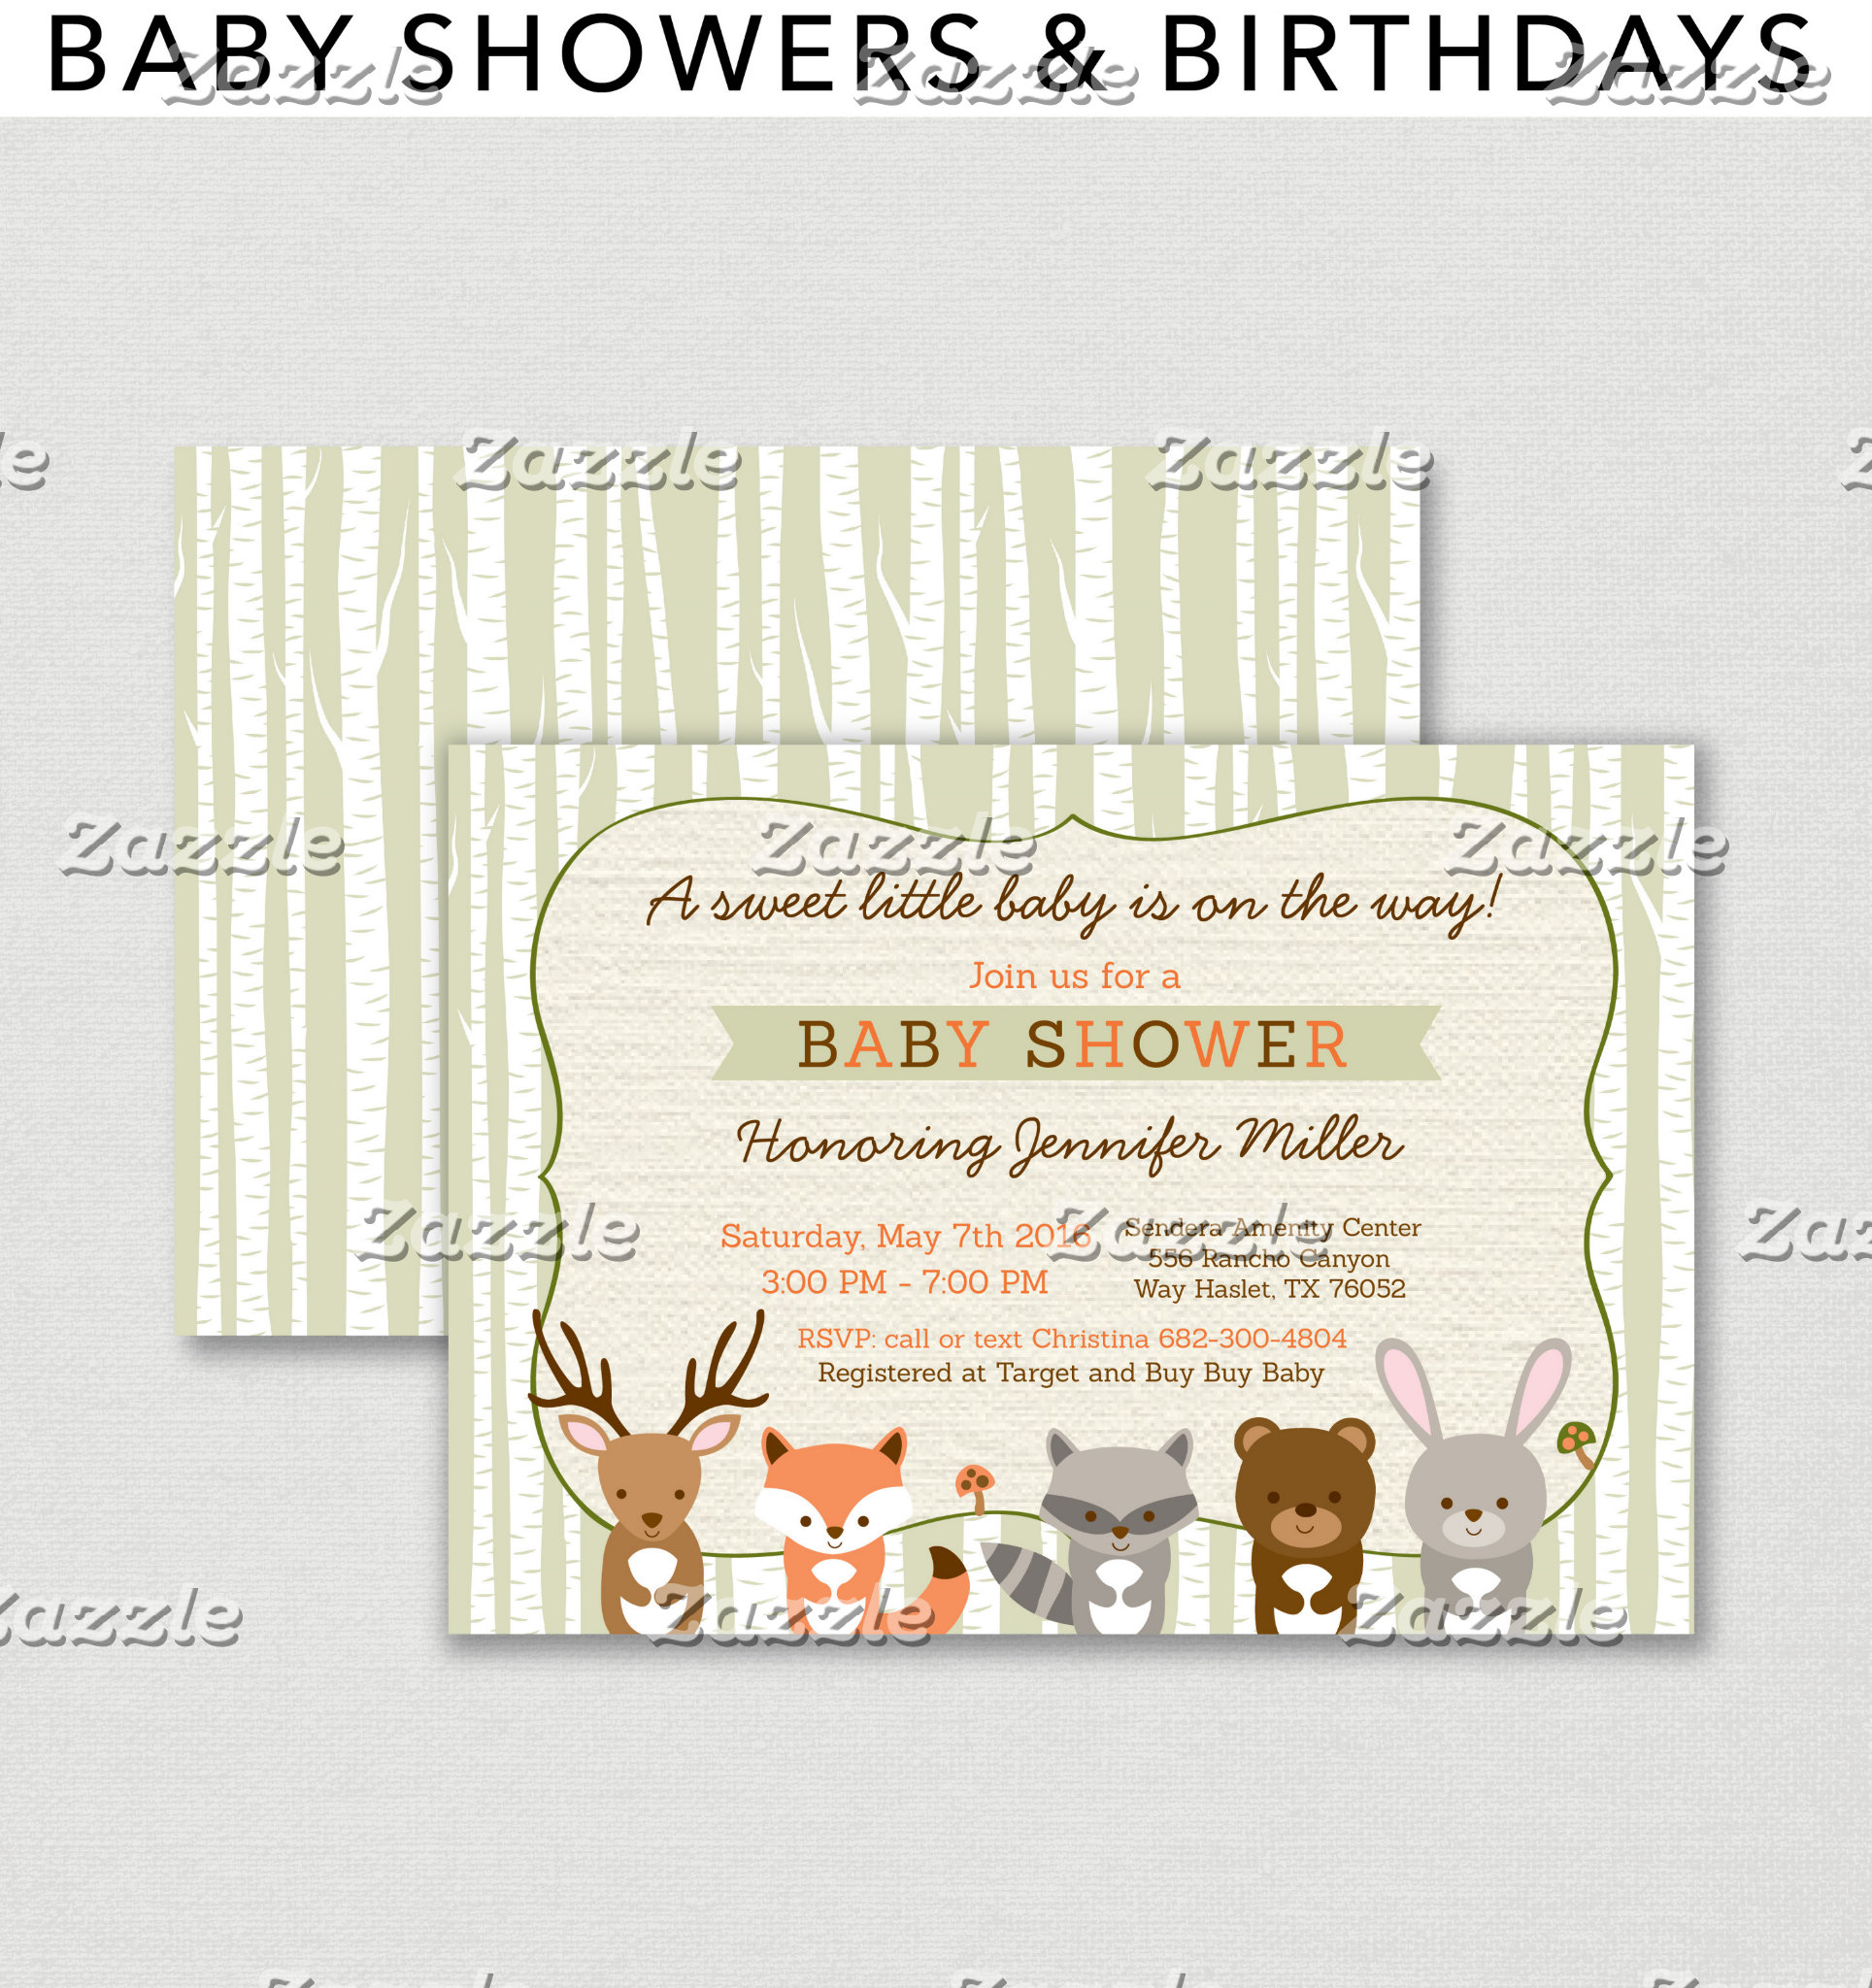 Baby Showers & Birthdays